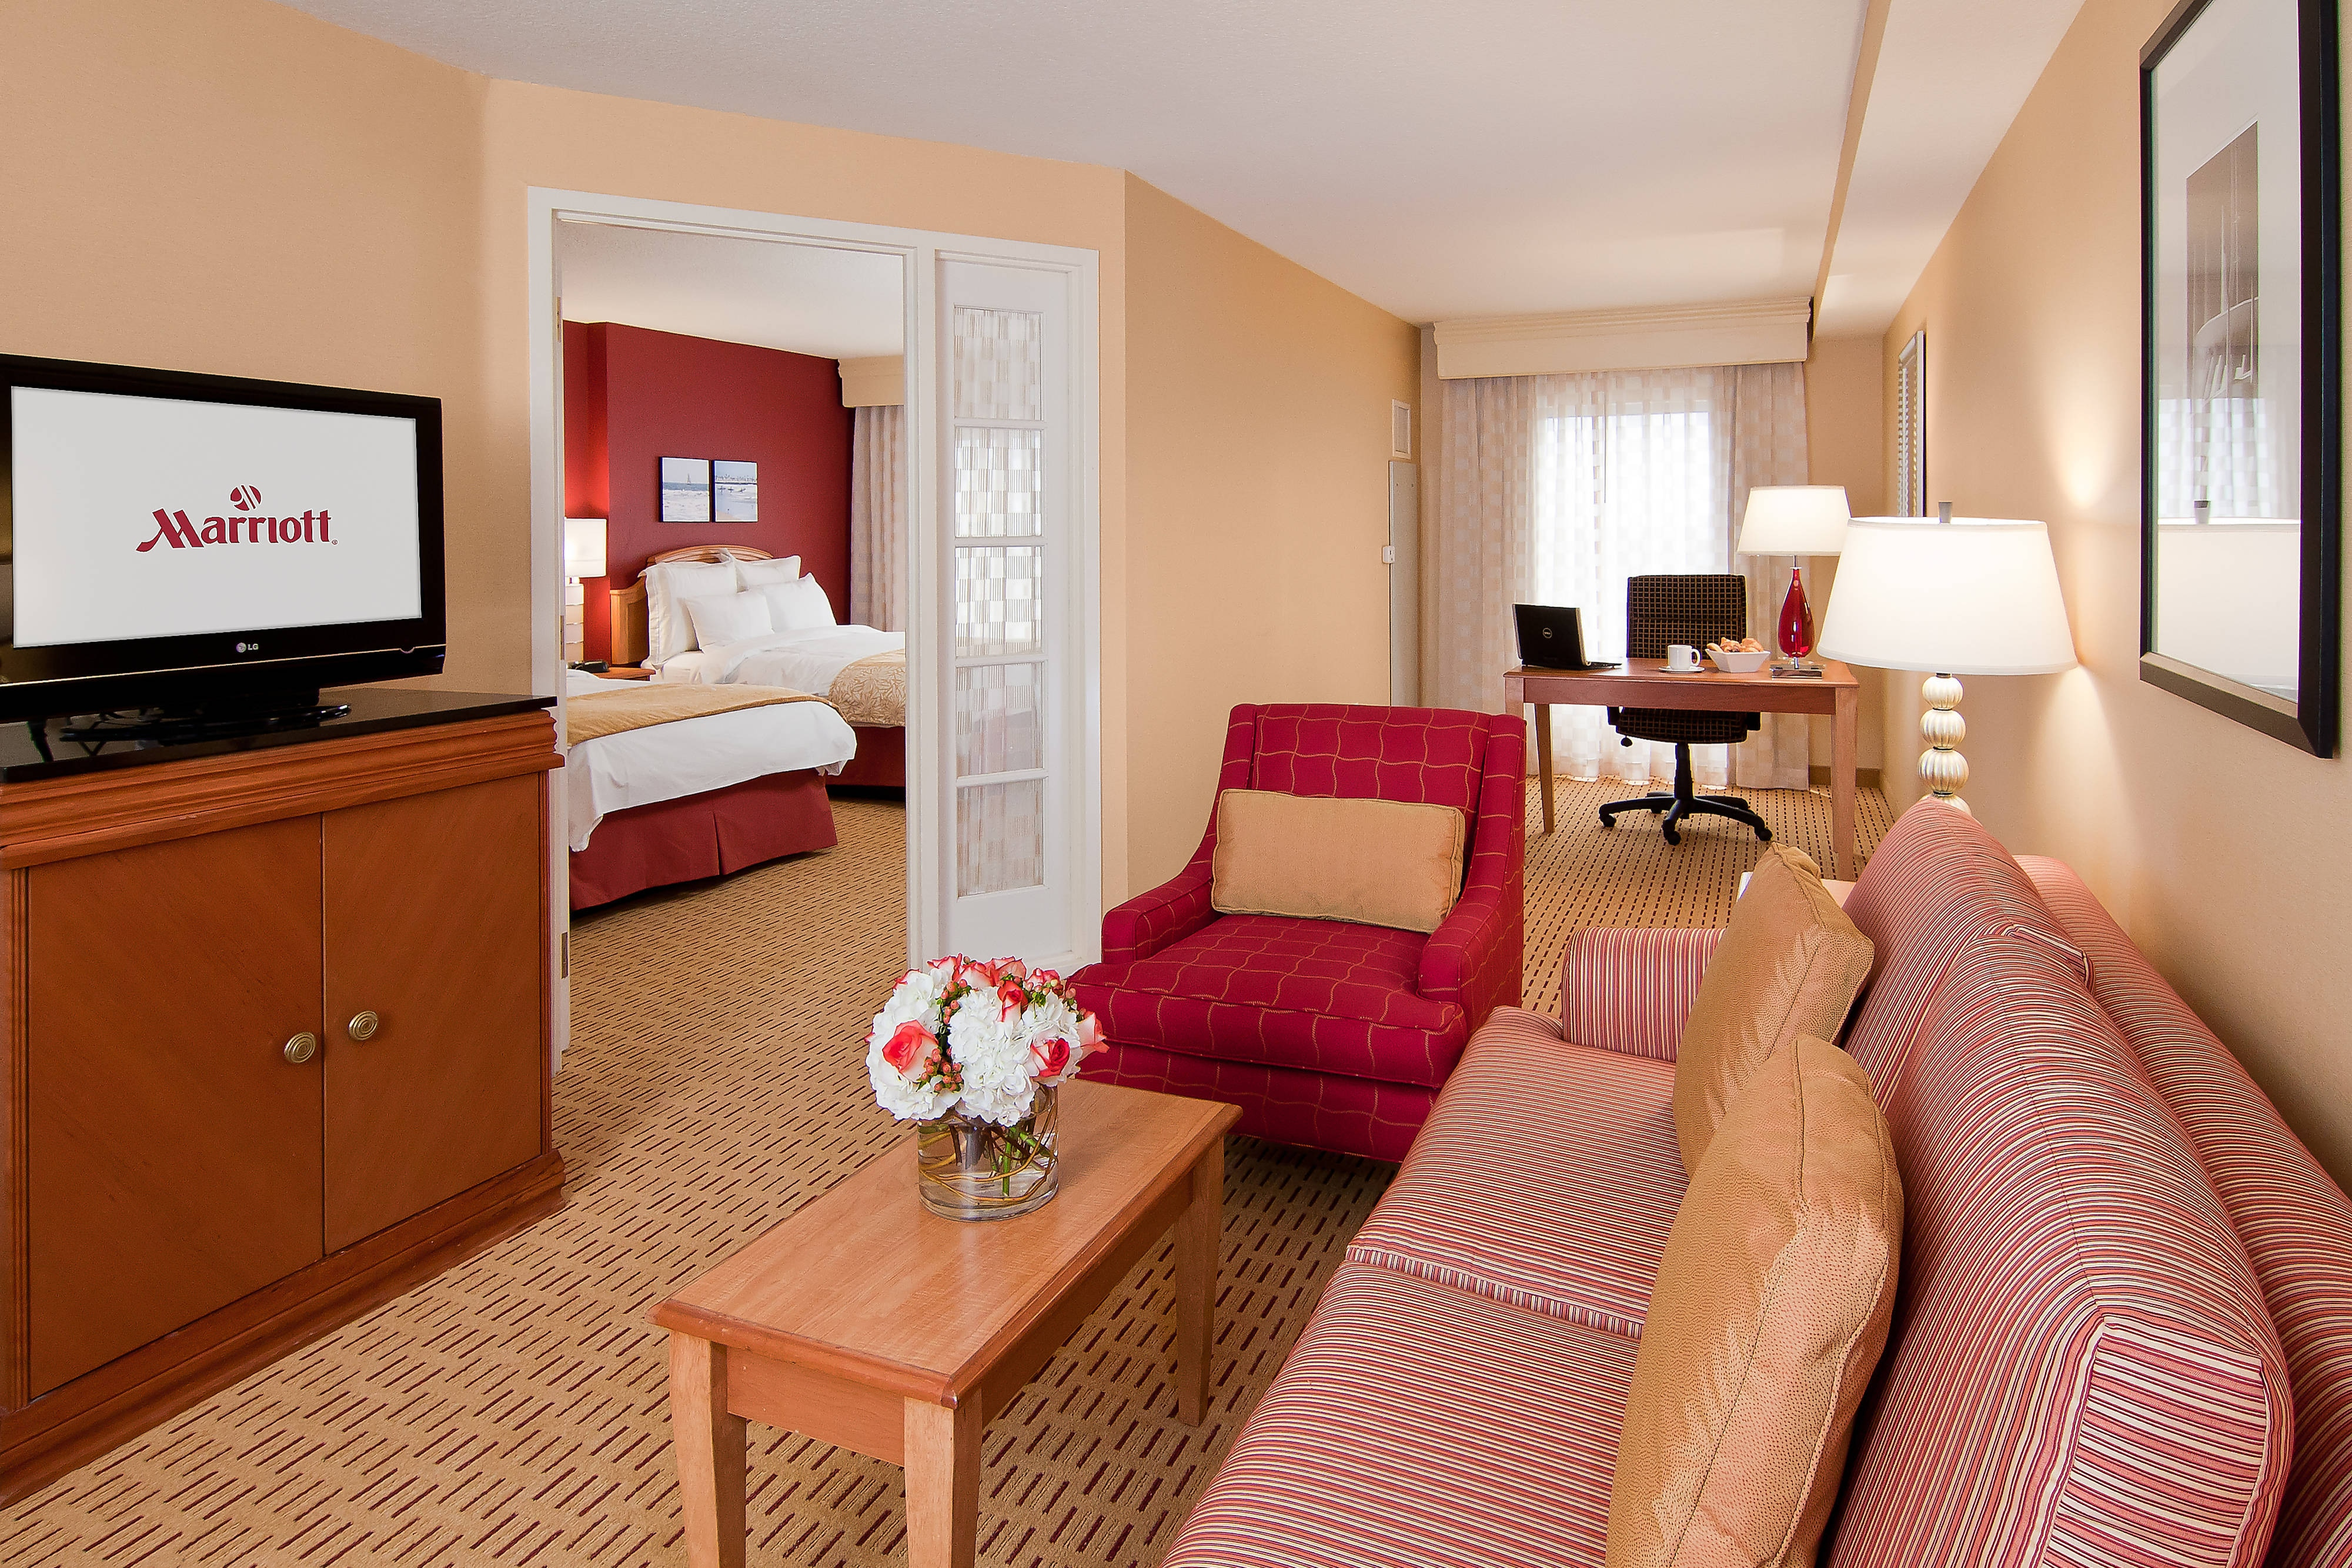 2 Bedroom Suites In Anaheim Ca Design Awesome Anaheim Hotel  Anaheim Marriott Suites Guest Room Information And . Decorating Design